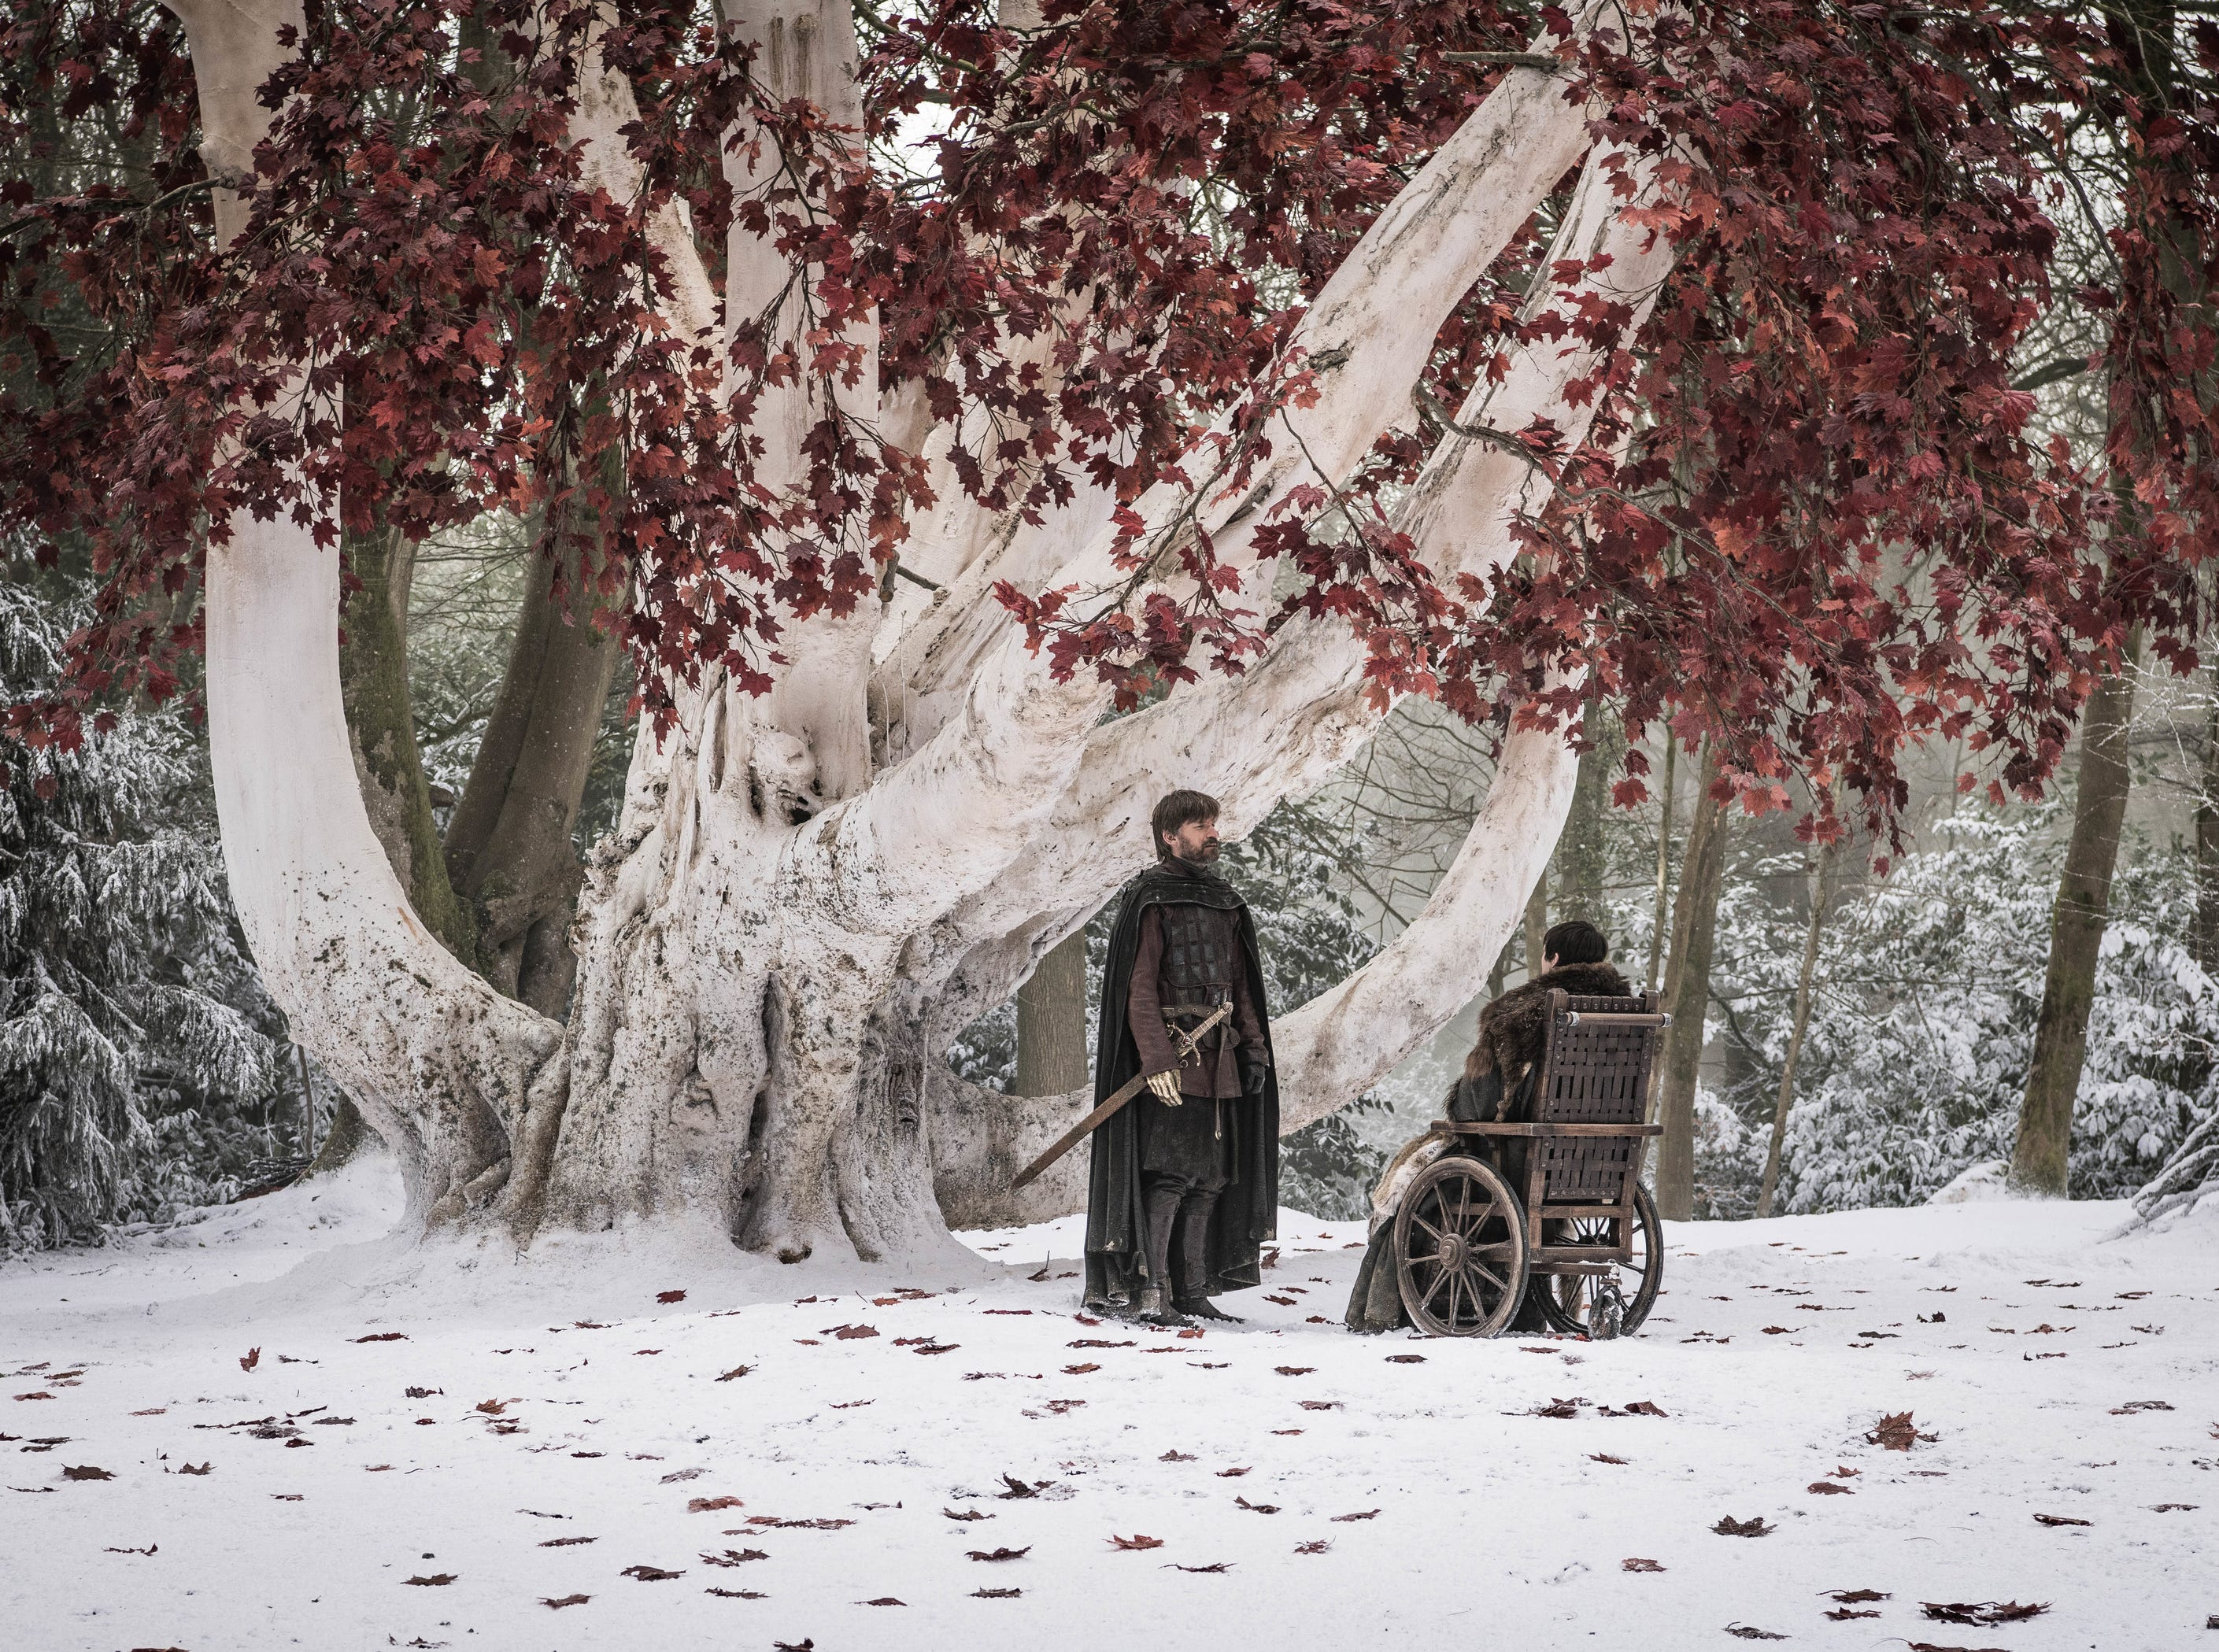 Nikolaj Coster-Waldau as Jaime Lannister, left, and Isaac Hempstead Wright as Bran Stark in 'Game of Thrones.'